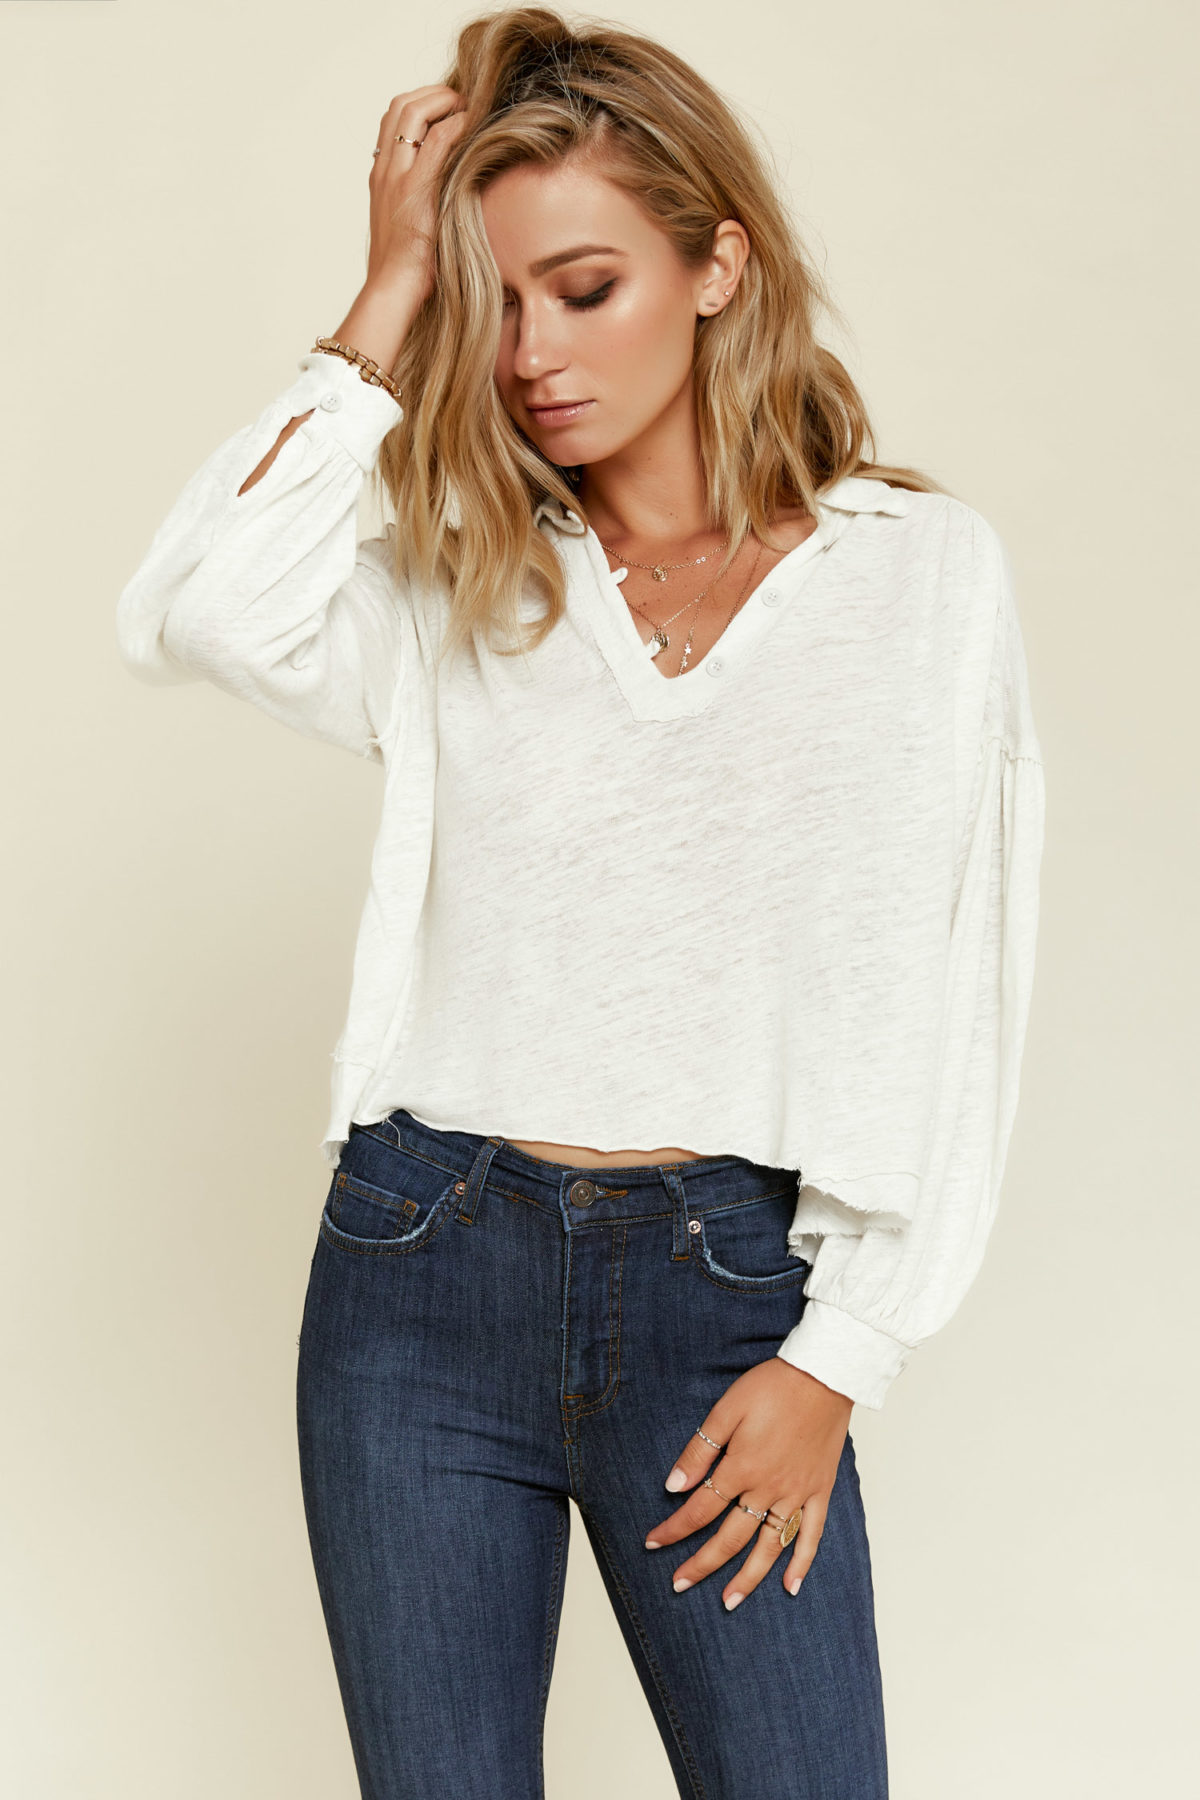 Free People: Rush Hour Tee